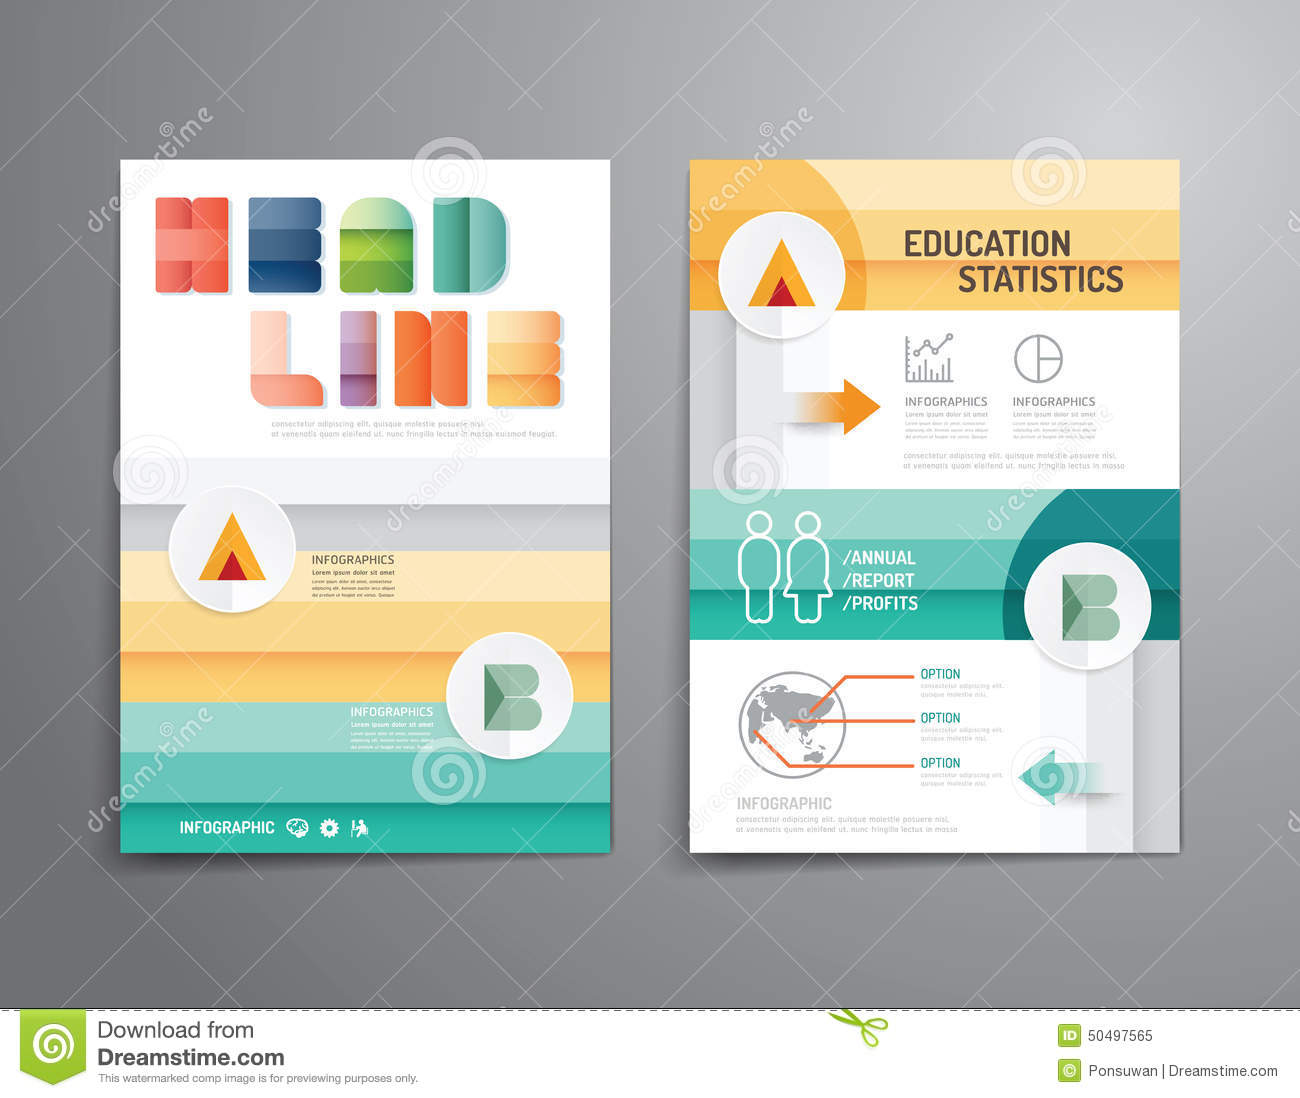 Poster design free download -  Poster Design Royalty Free Stock Photo Download